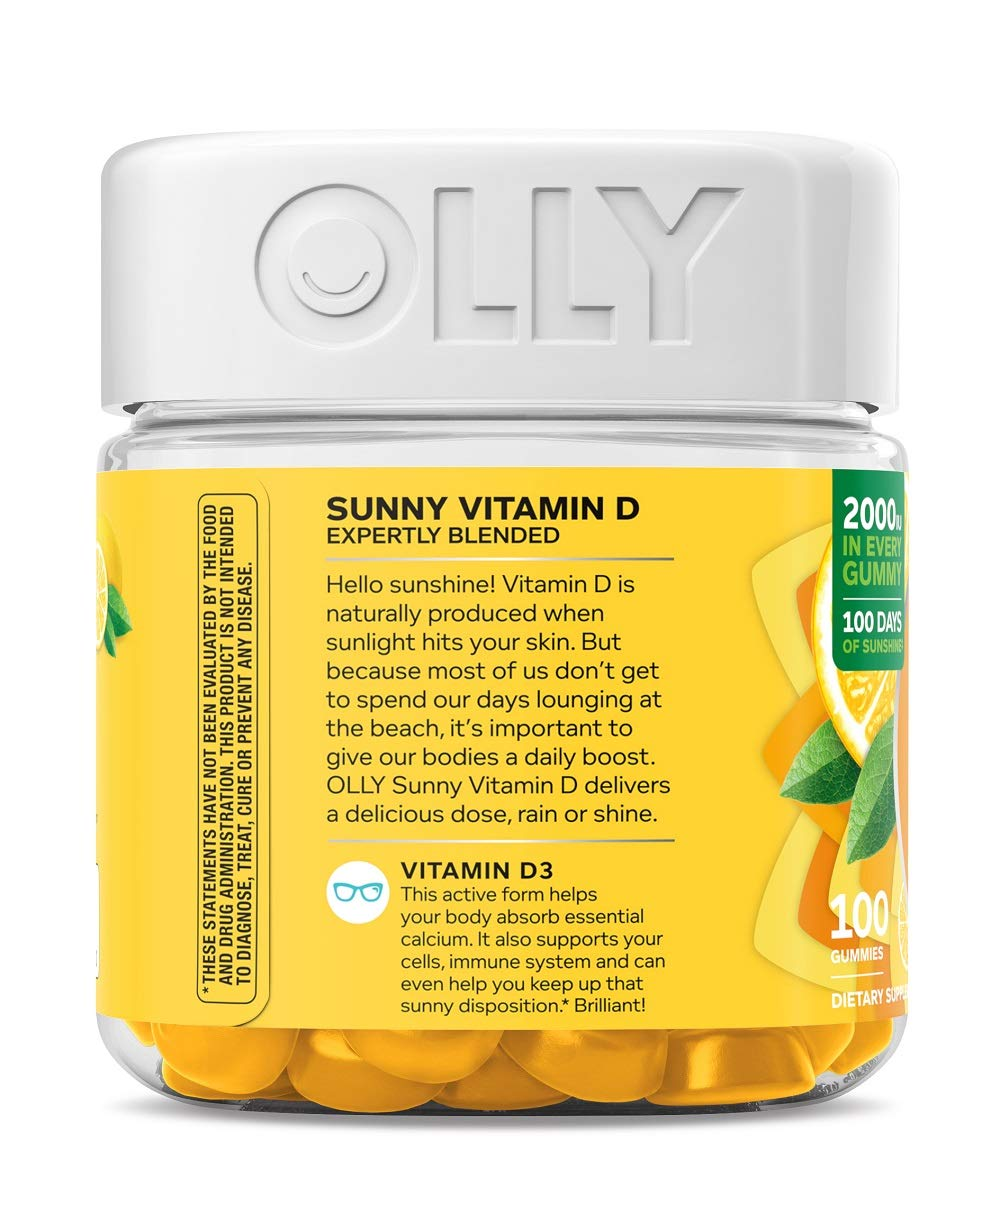 OLLY Sunny Vitamin D Gummy, 100 Day Supply (100 Gummies), Luminous Lemon, 2000 IU Vitamin D3, Chewable Supplement by Olly (Image #2)